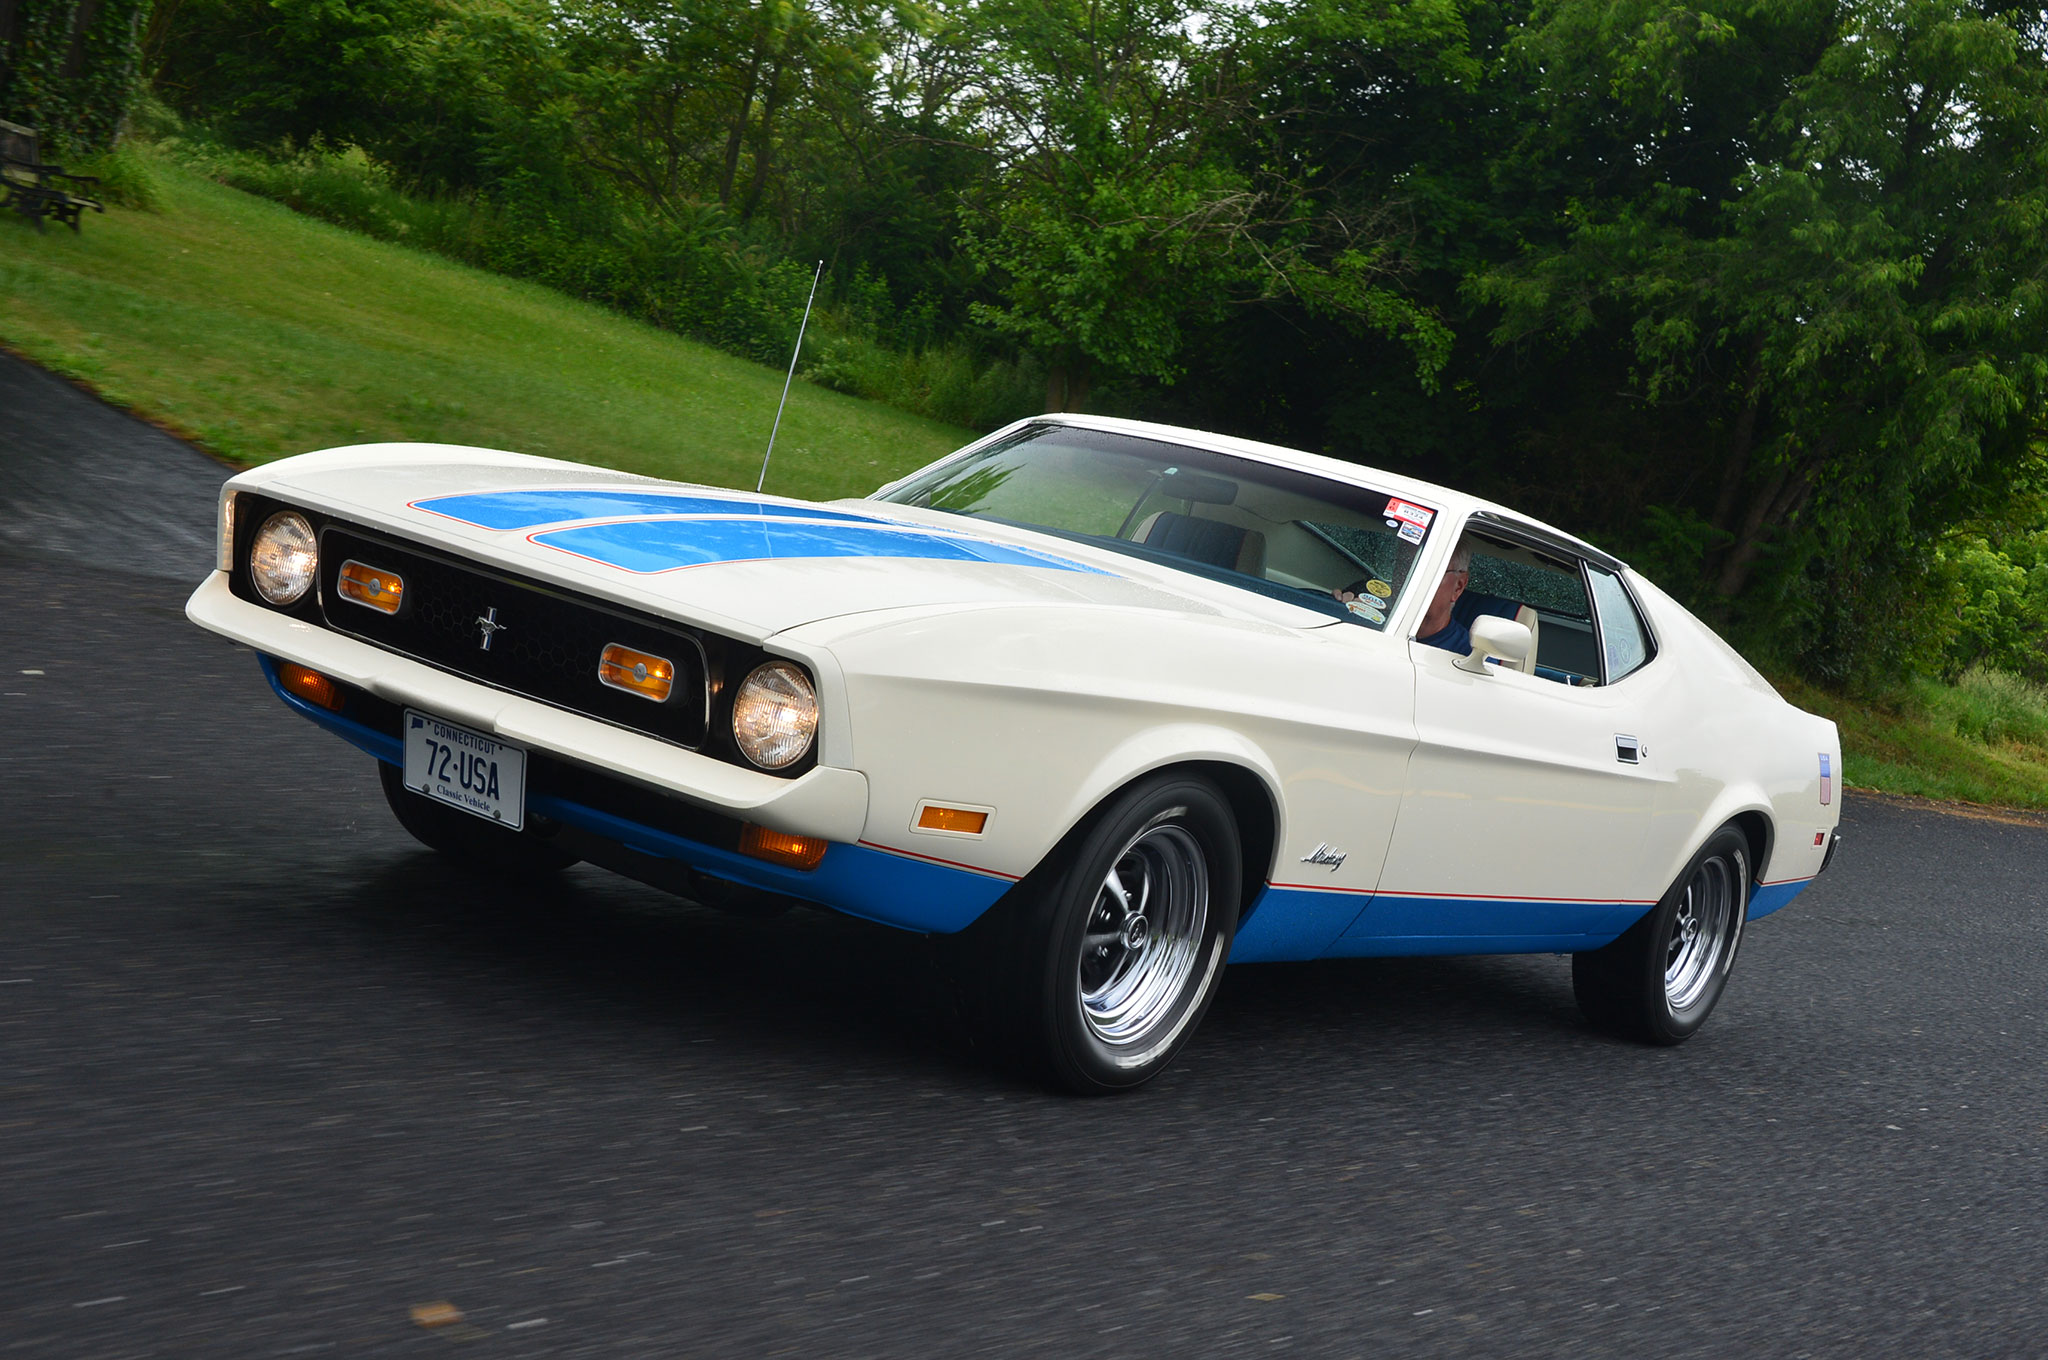 Special edition 1972 ford mustang sprint package celebrates the olympics photo image gallery